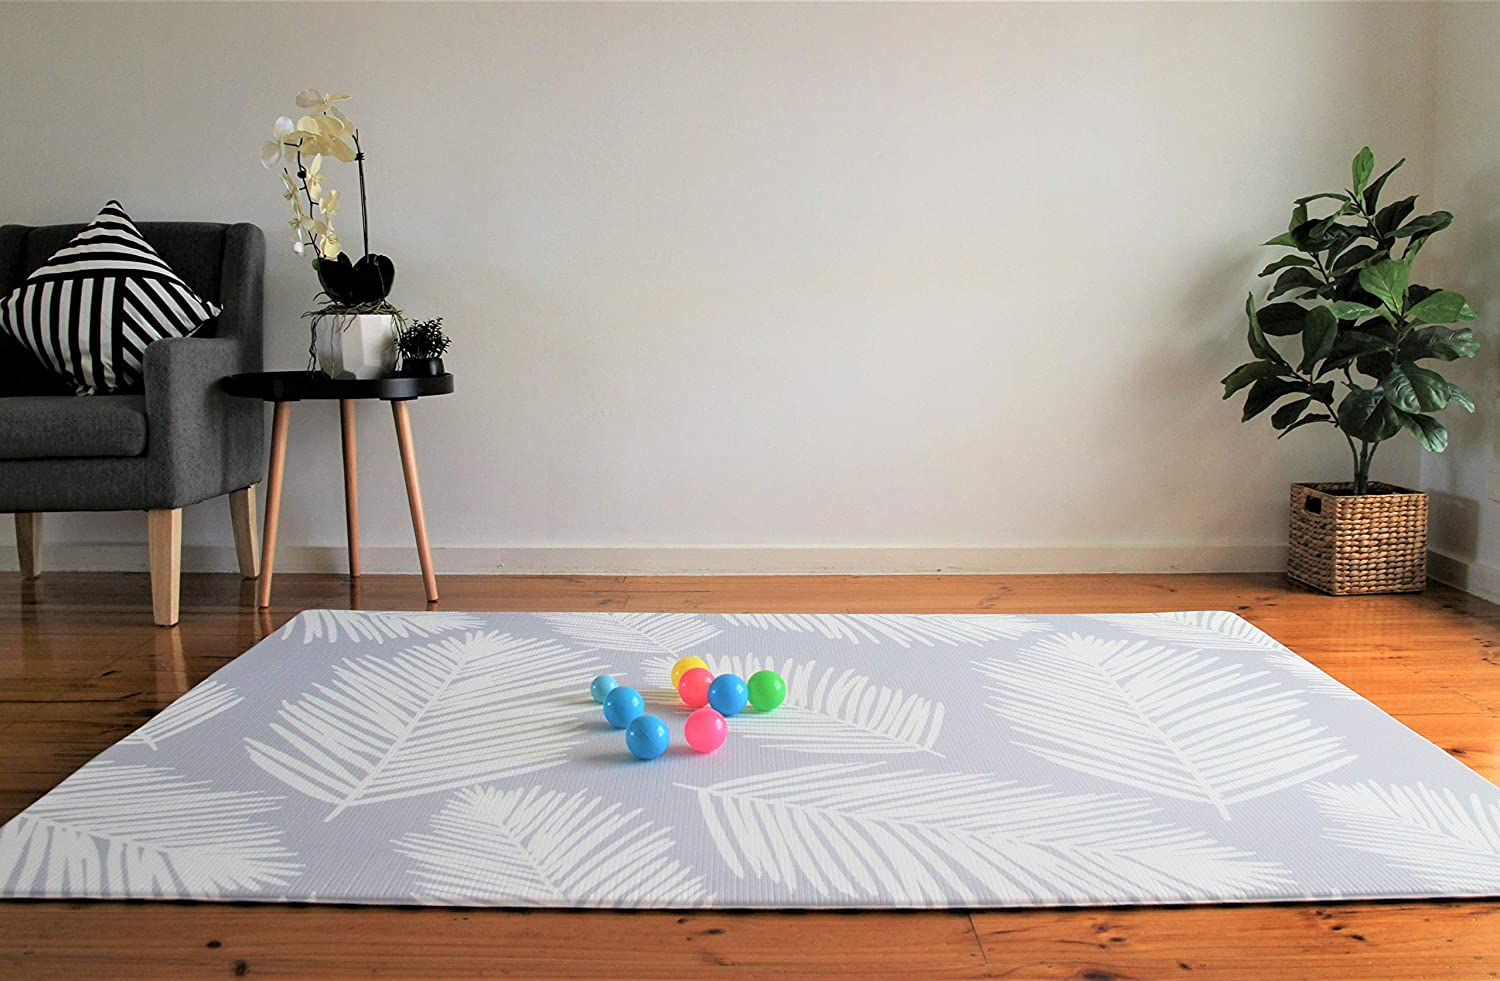 Nursery Rug Skull Chill Tropical Holiday Summer Baby Crawling Mat Non-Slip Play mat Soft Tent Mat for Childrens Bedroom 70x70cm